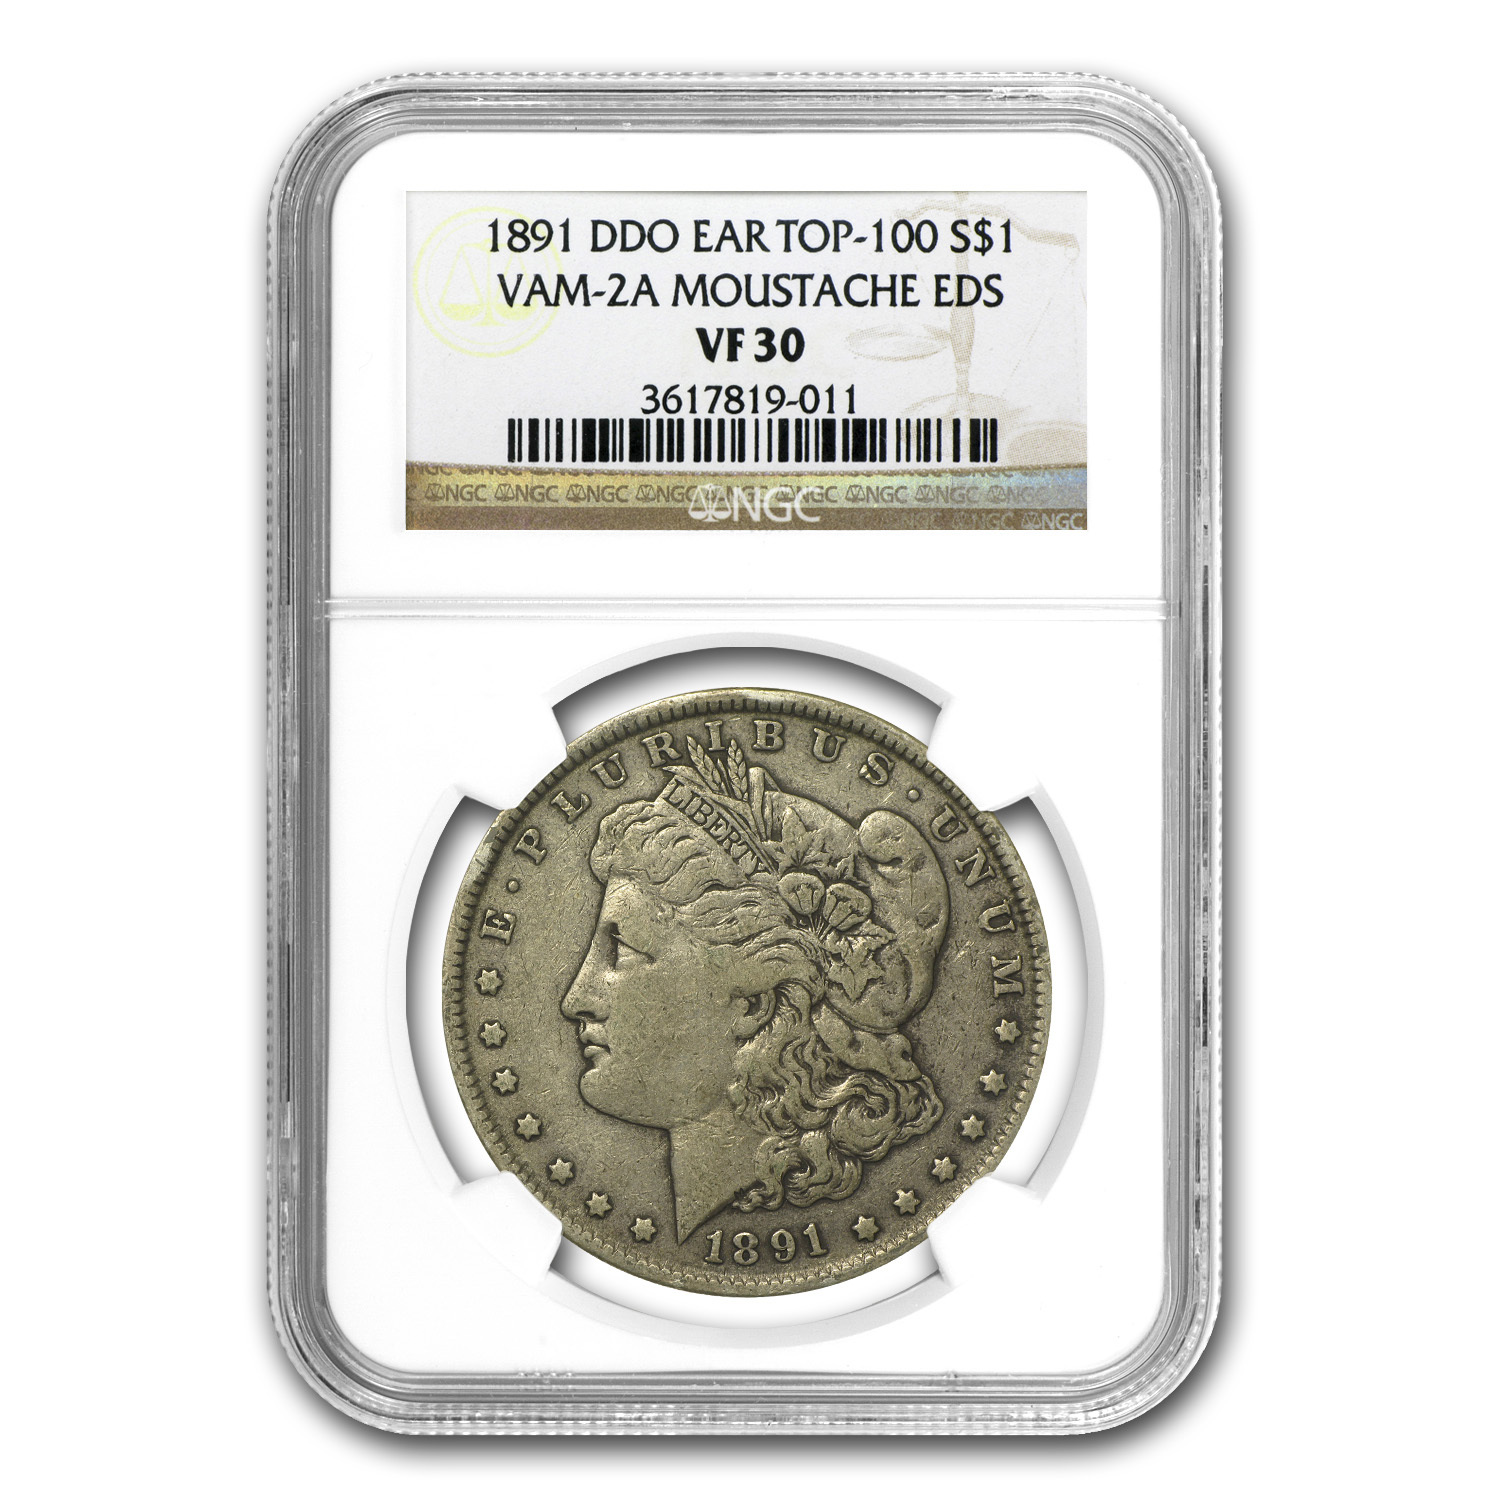 1891 Morgan Dollar VF-30 NGC VAM-2A Moustache Top-100